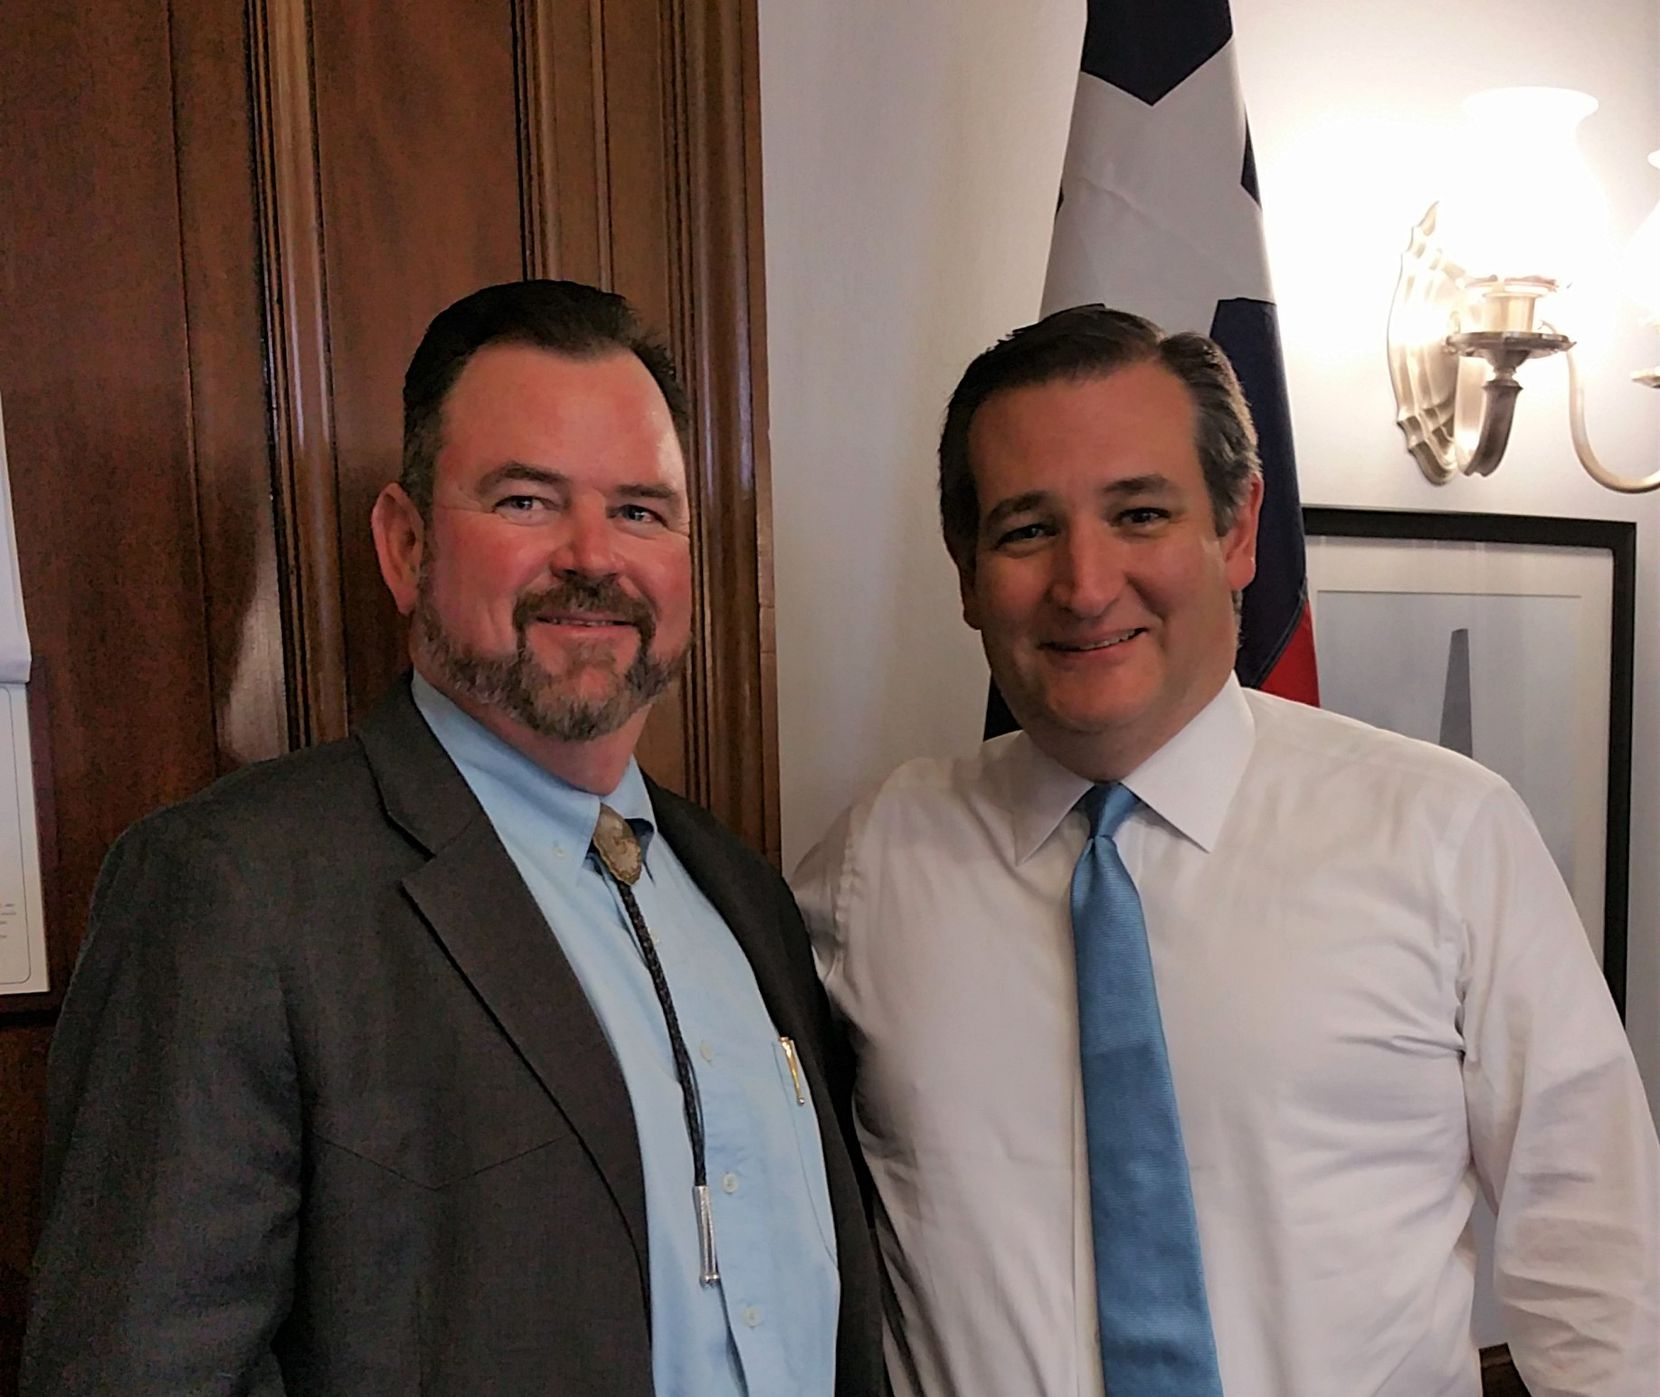 West Texas pecan grower Kevin Ivey (left), president of the U.S. Pecan Growers Council, met last spring in Washington with Texas Sen. Ted Cruz to make the case that India needs to lower its pecan tariff.